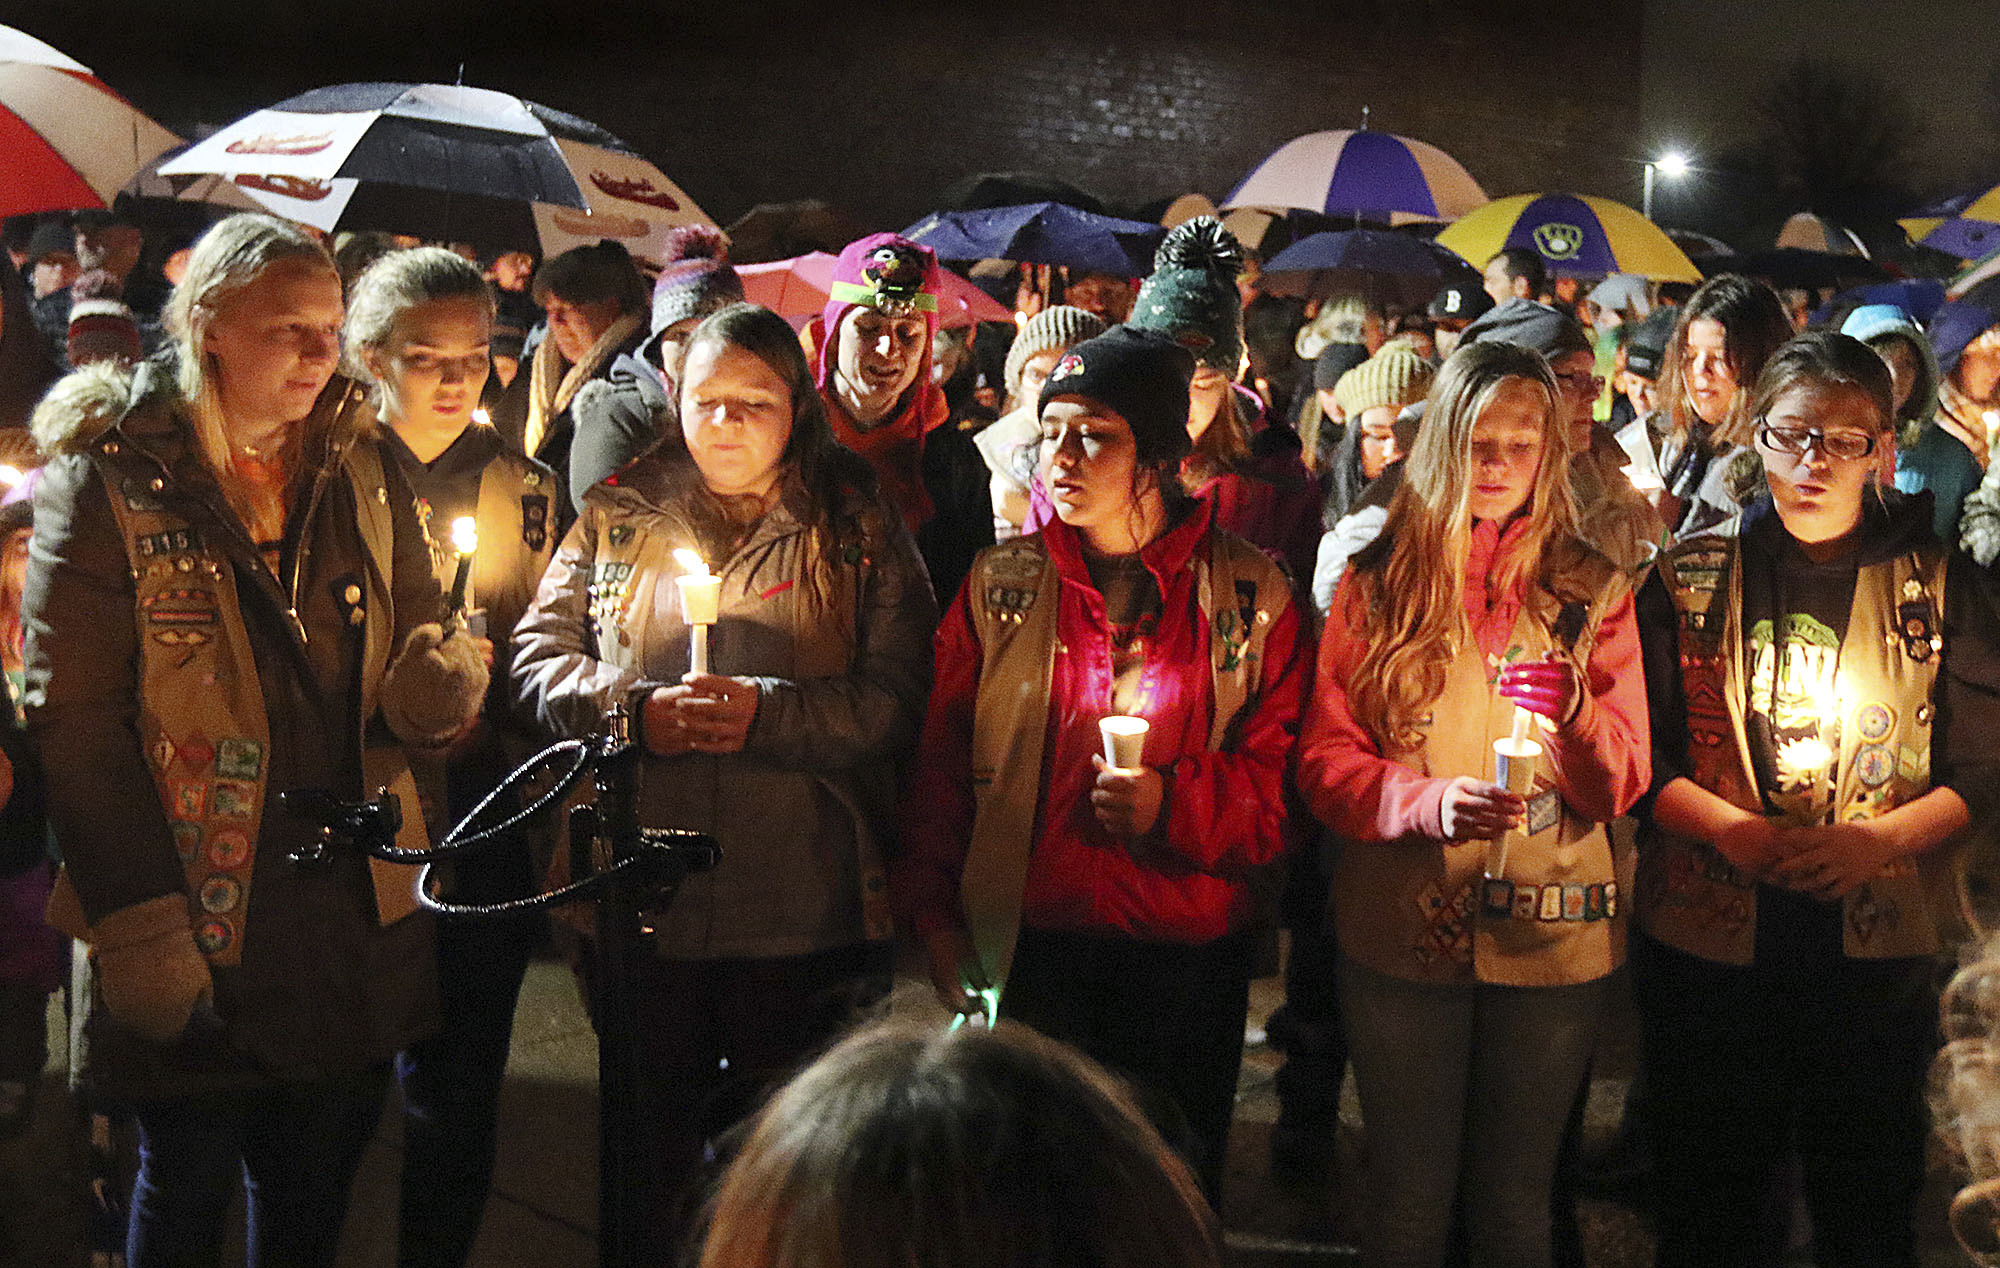 Girl Scouts sing as hundreds of community members turn out in the rain Sunday evening, Nov. 4, 2018, for a candlelight vigil at Halmstad Elementary School in Chippewa Falls, Wis., in remembrance of three fourth grade Girl Scouts and a parent who died Saturday, after being struck by a pickup truck while their troop was picking up trash along a rural highway. The 21-year-old driver, Colten Treu of Chippewa Falls, sped off but later surrendered. He will be charged with four counts of homicide, Lake Hallie police Sgt. Daniel Sokup said. (Steve Kinderman/The Eau Claire Leader-Telegram via AP)